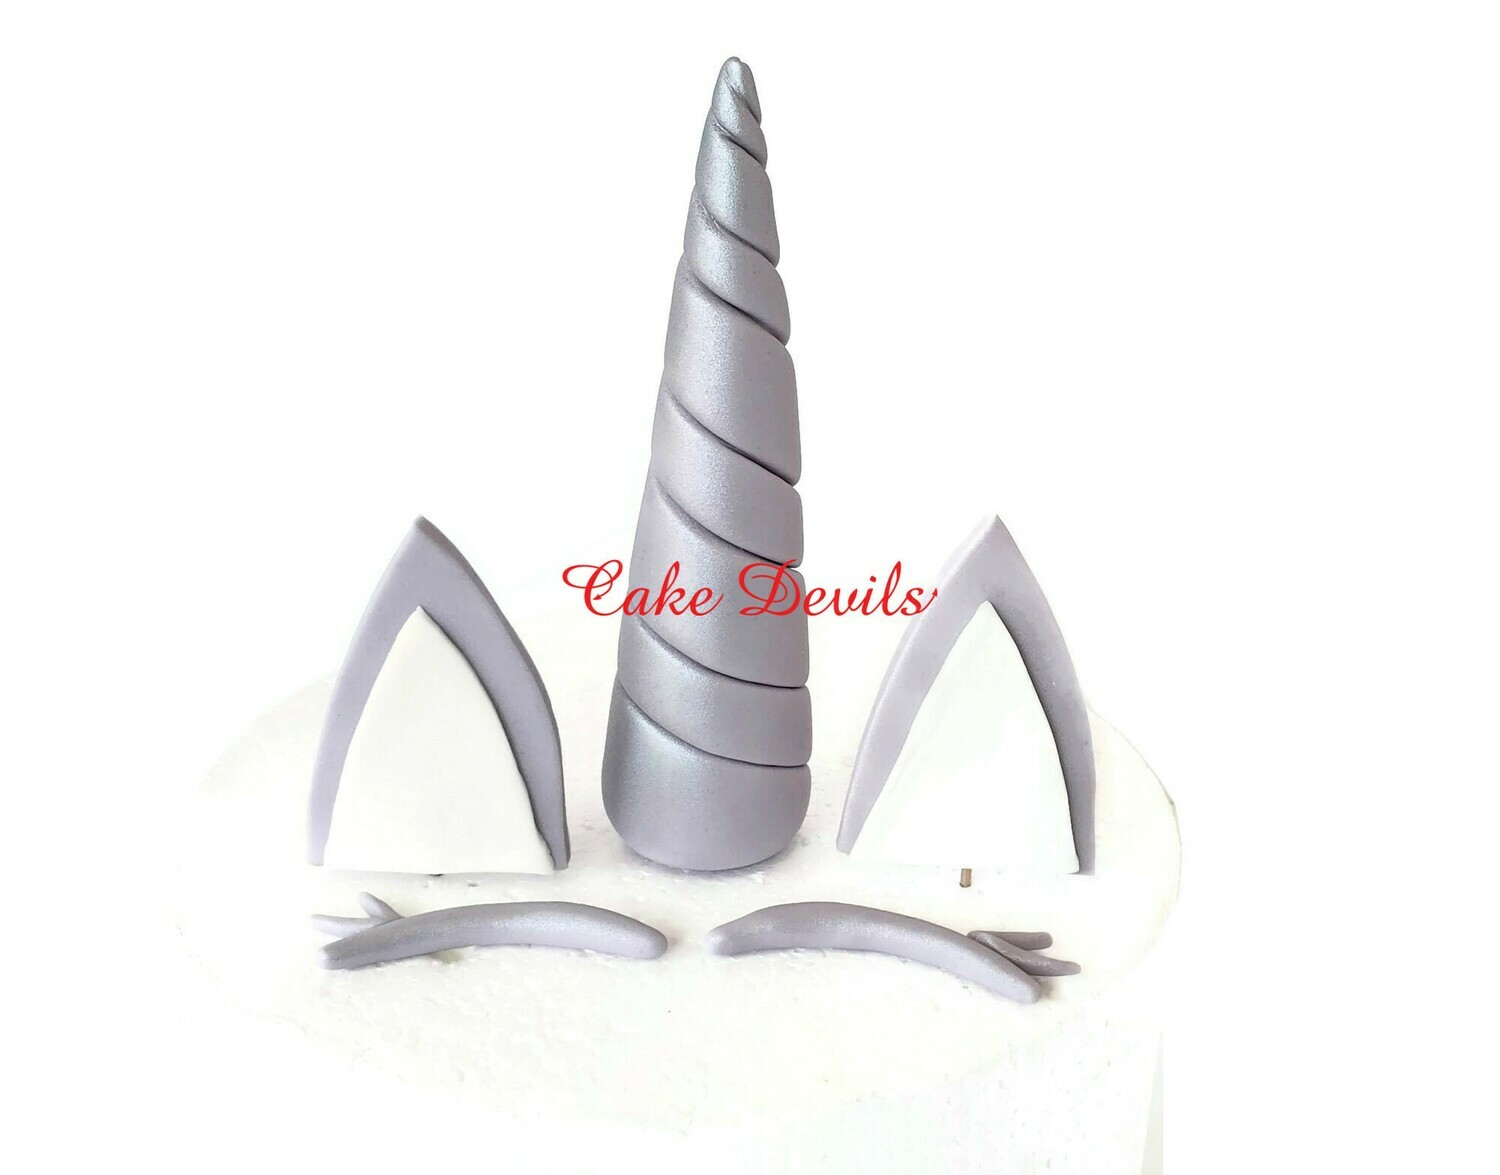 Winter Unicorn Horn, Ears, and Eye lashes Cake Toppers, Snow Unicorn Cake Kit